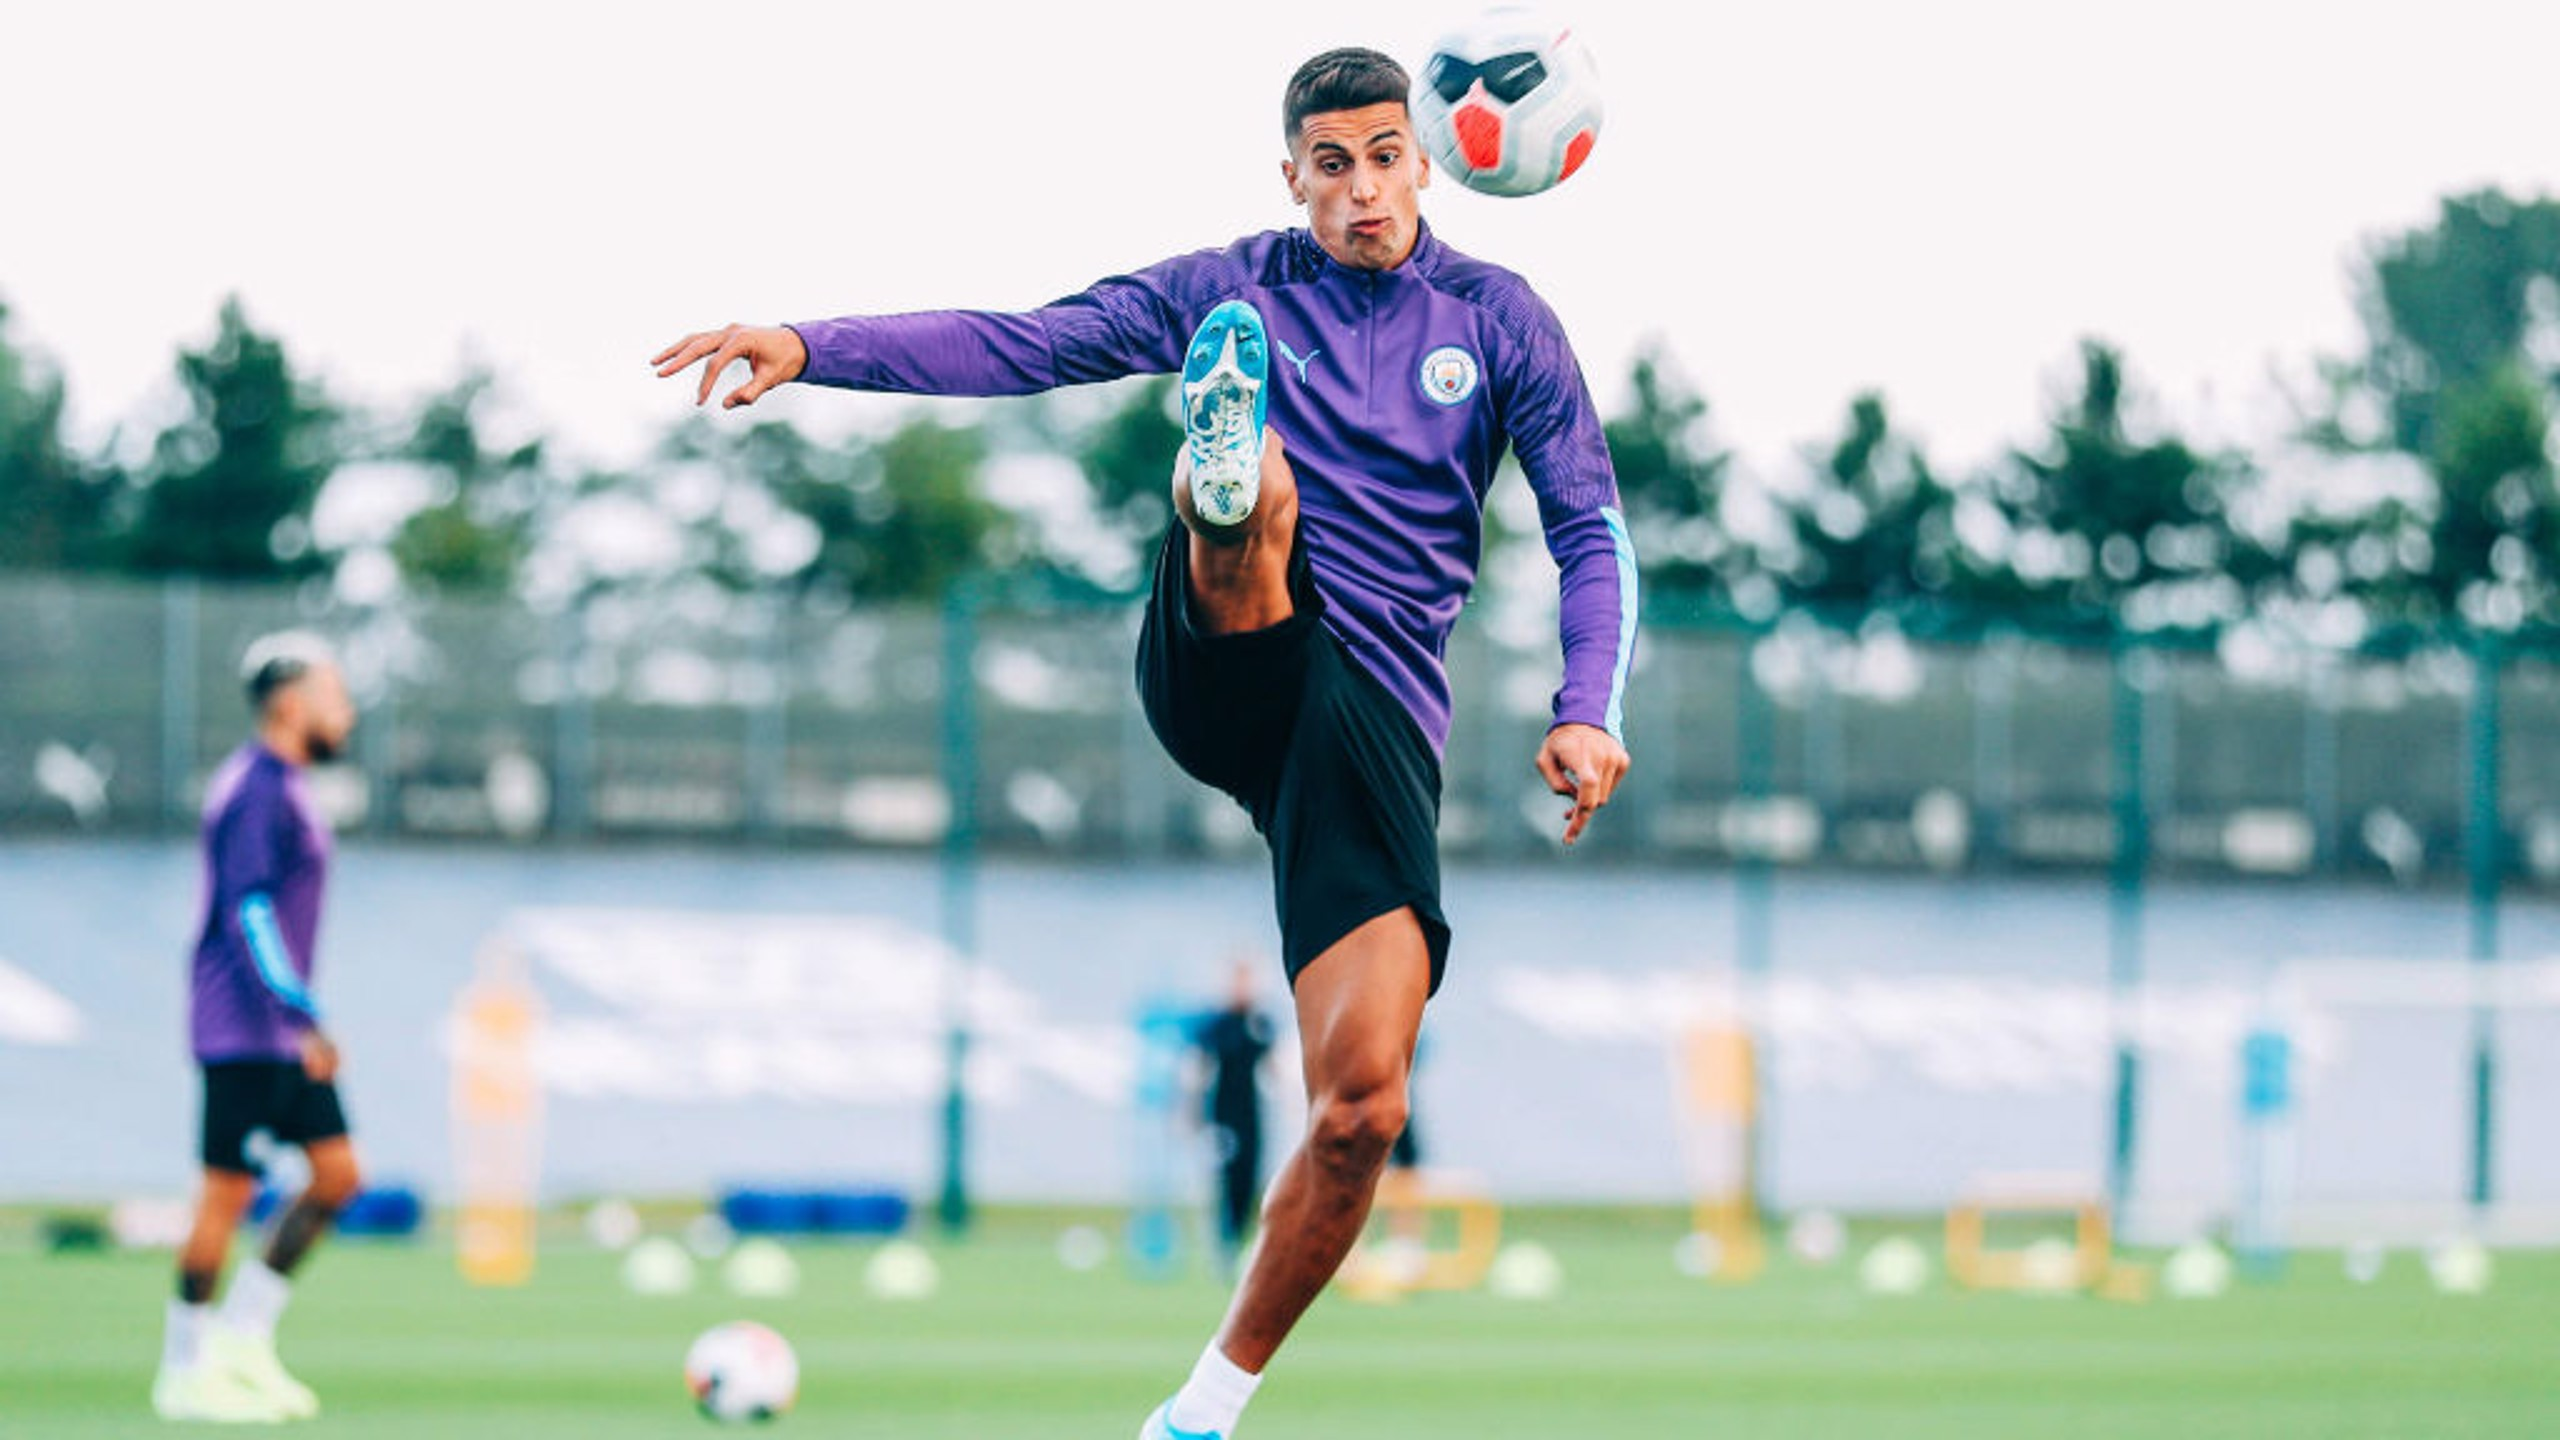 JOAO CANCELO: Our new signing brings the ball under control